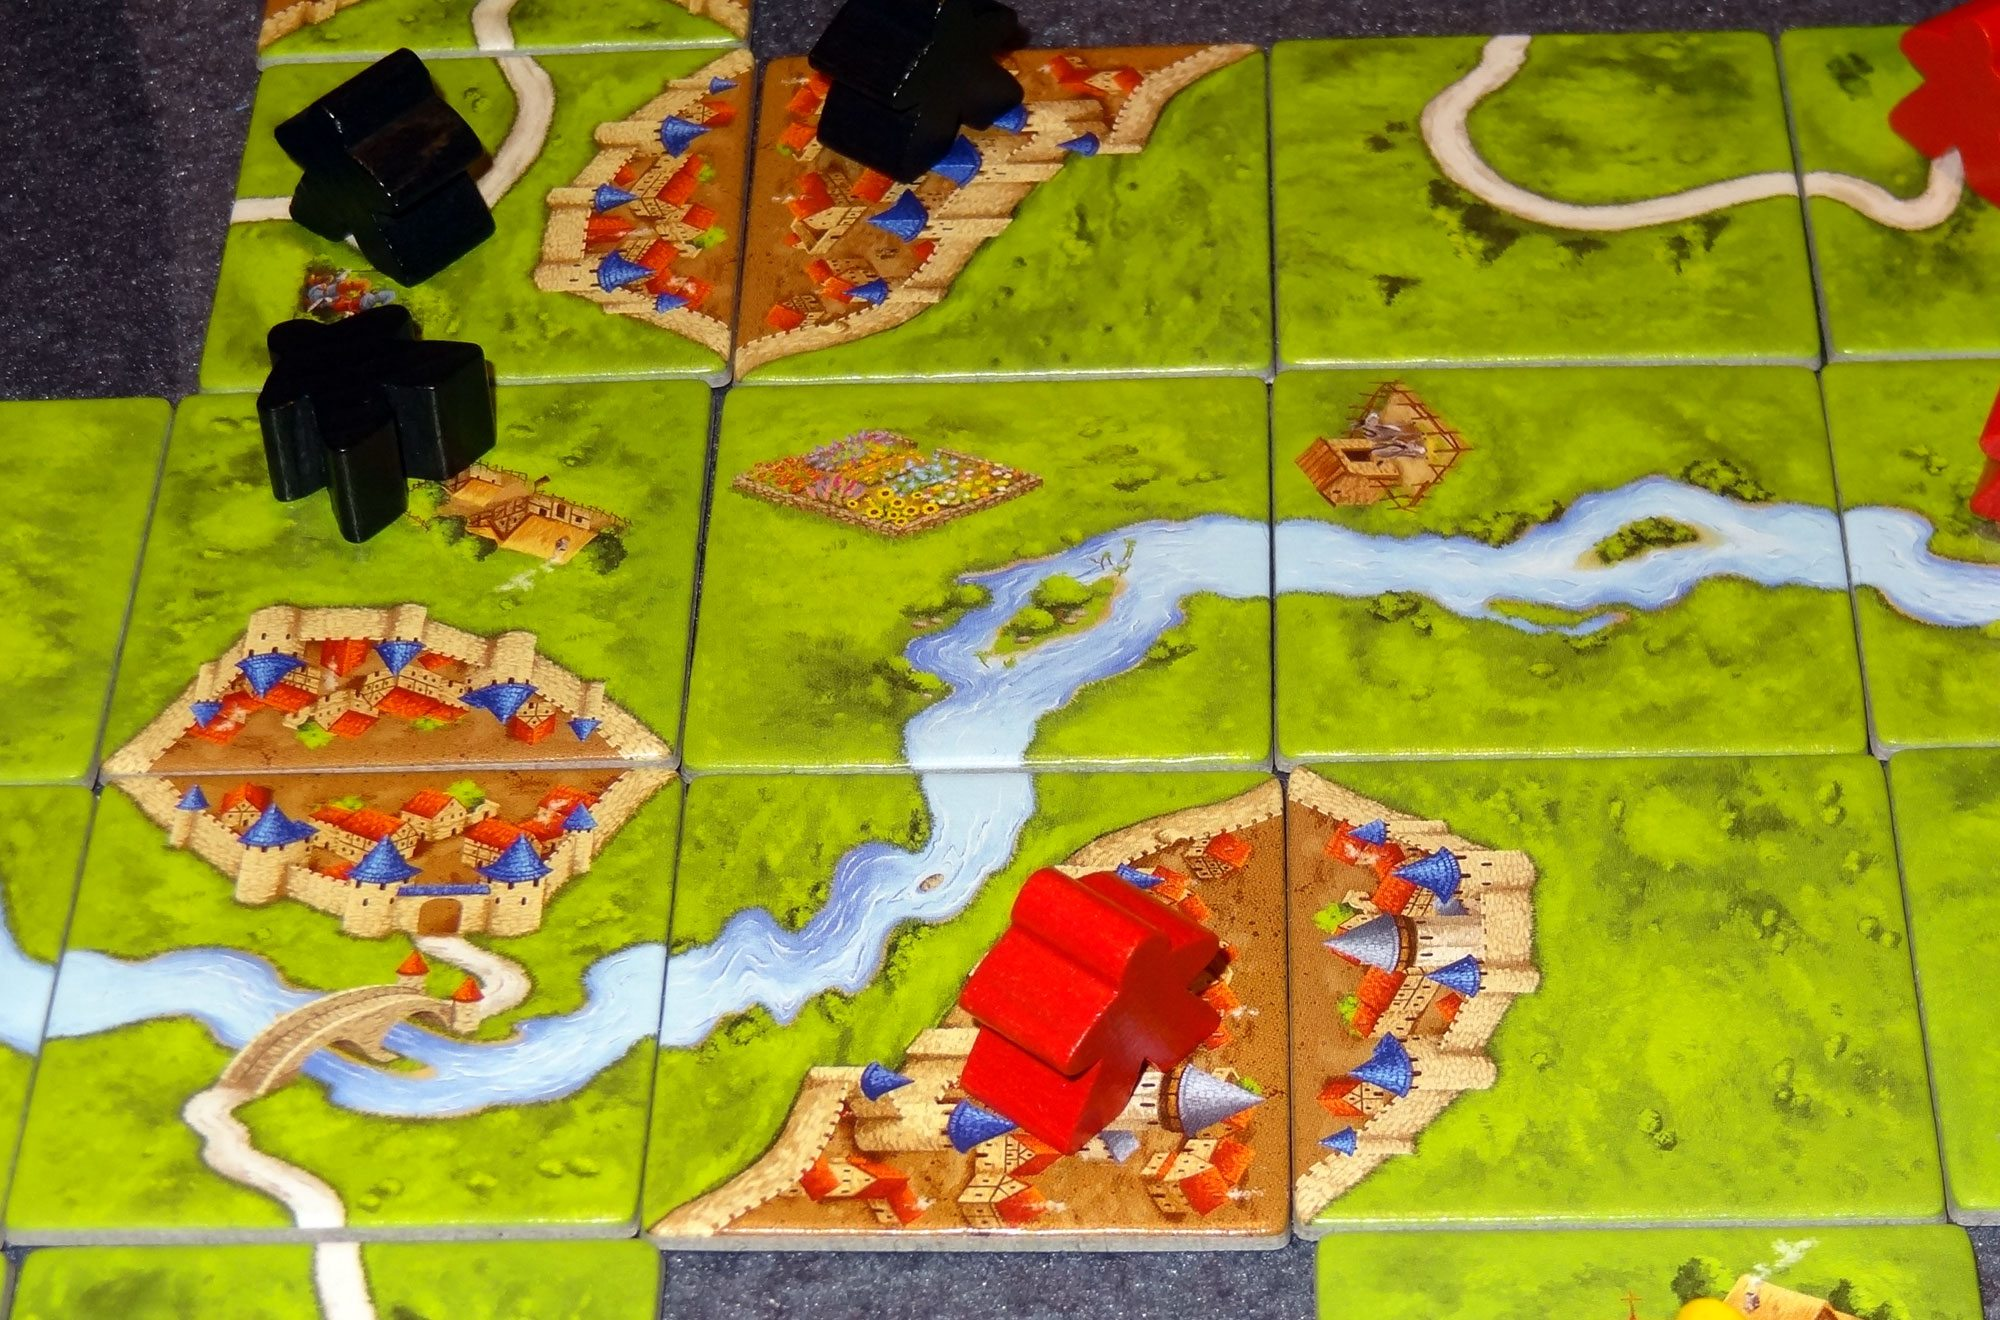 Carcassonne 20 The Classic Tile Laying Game Gets A New Look Geekdad